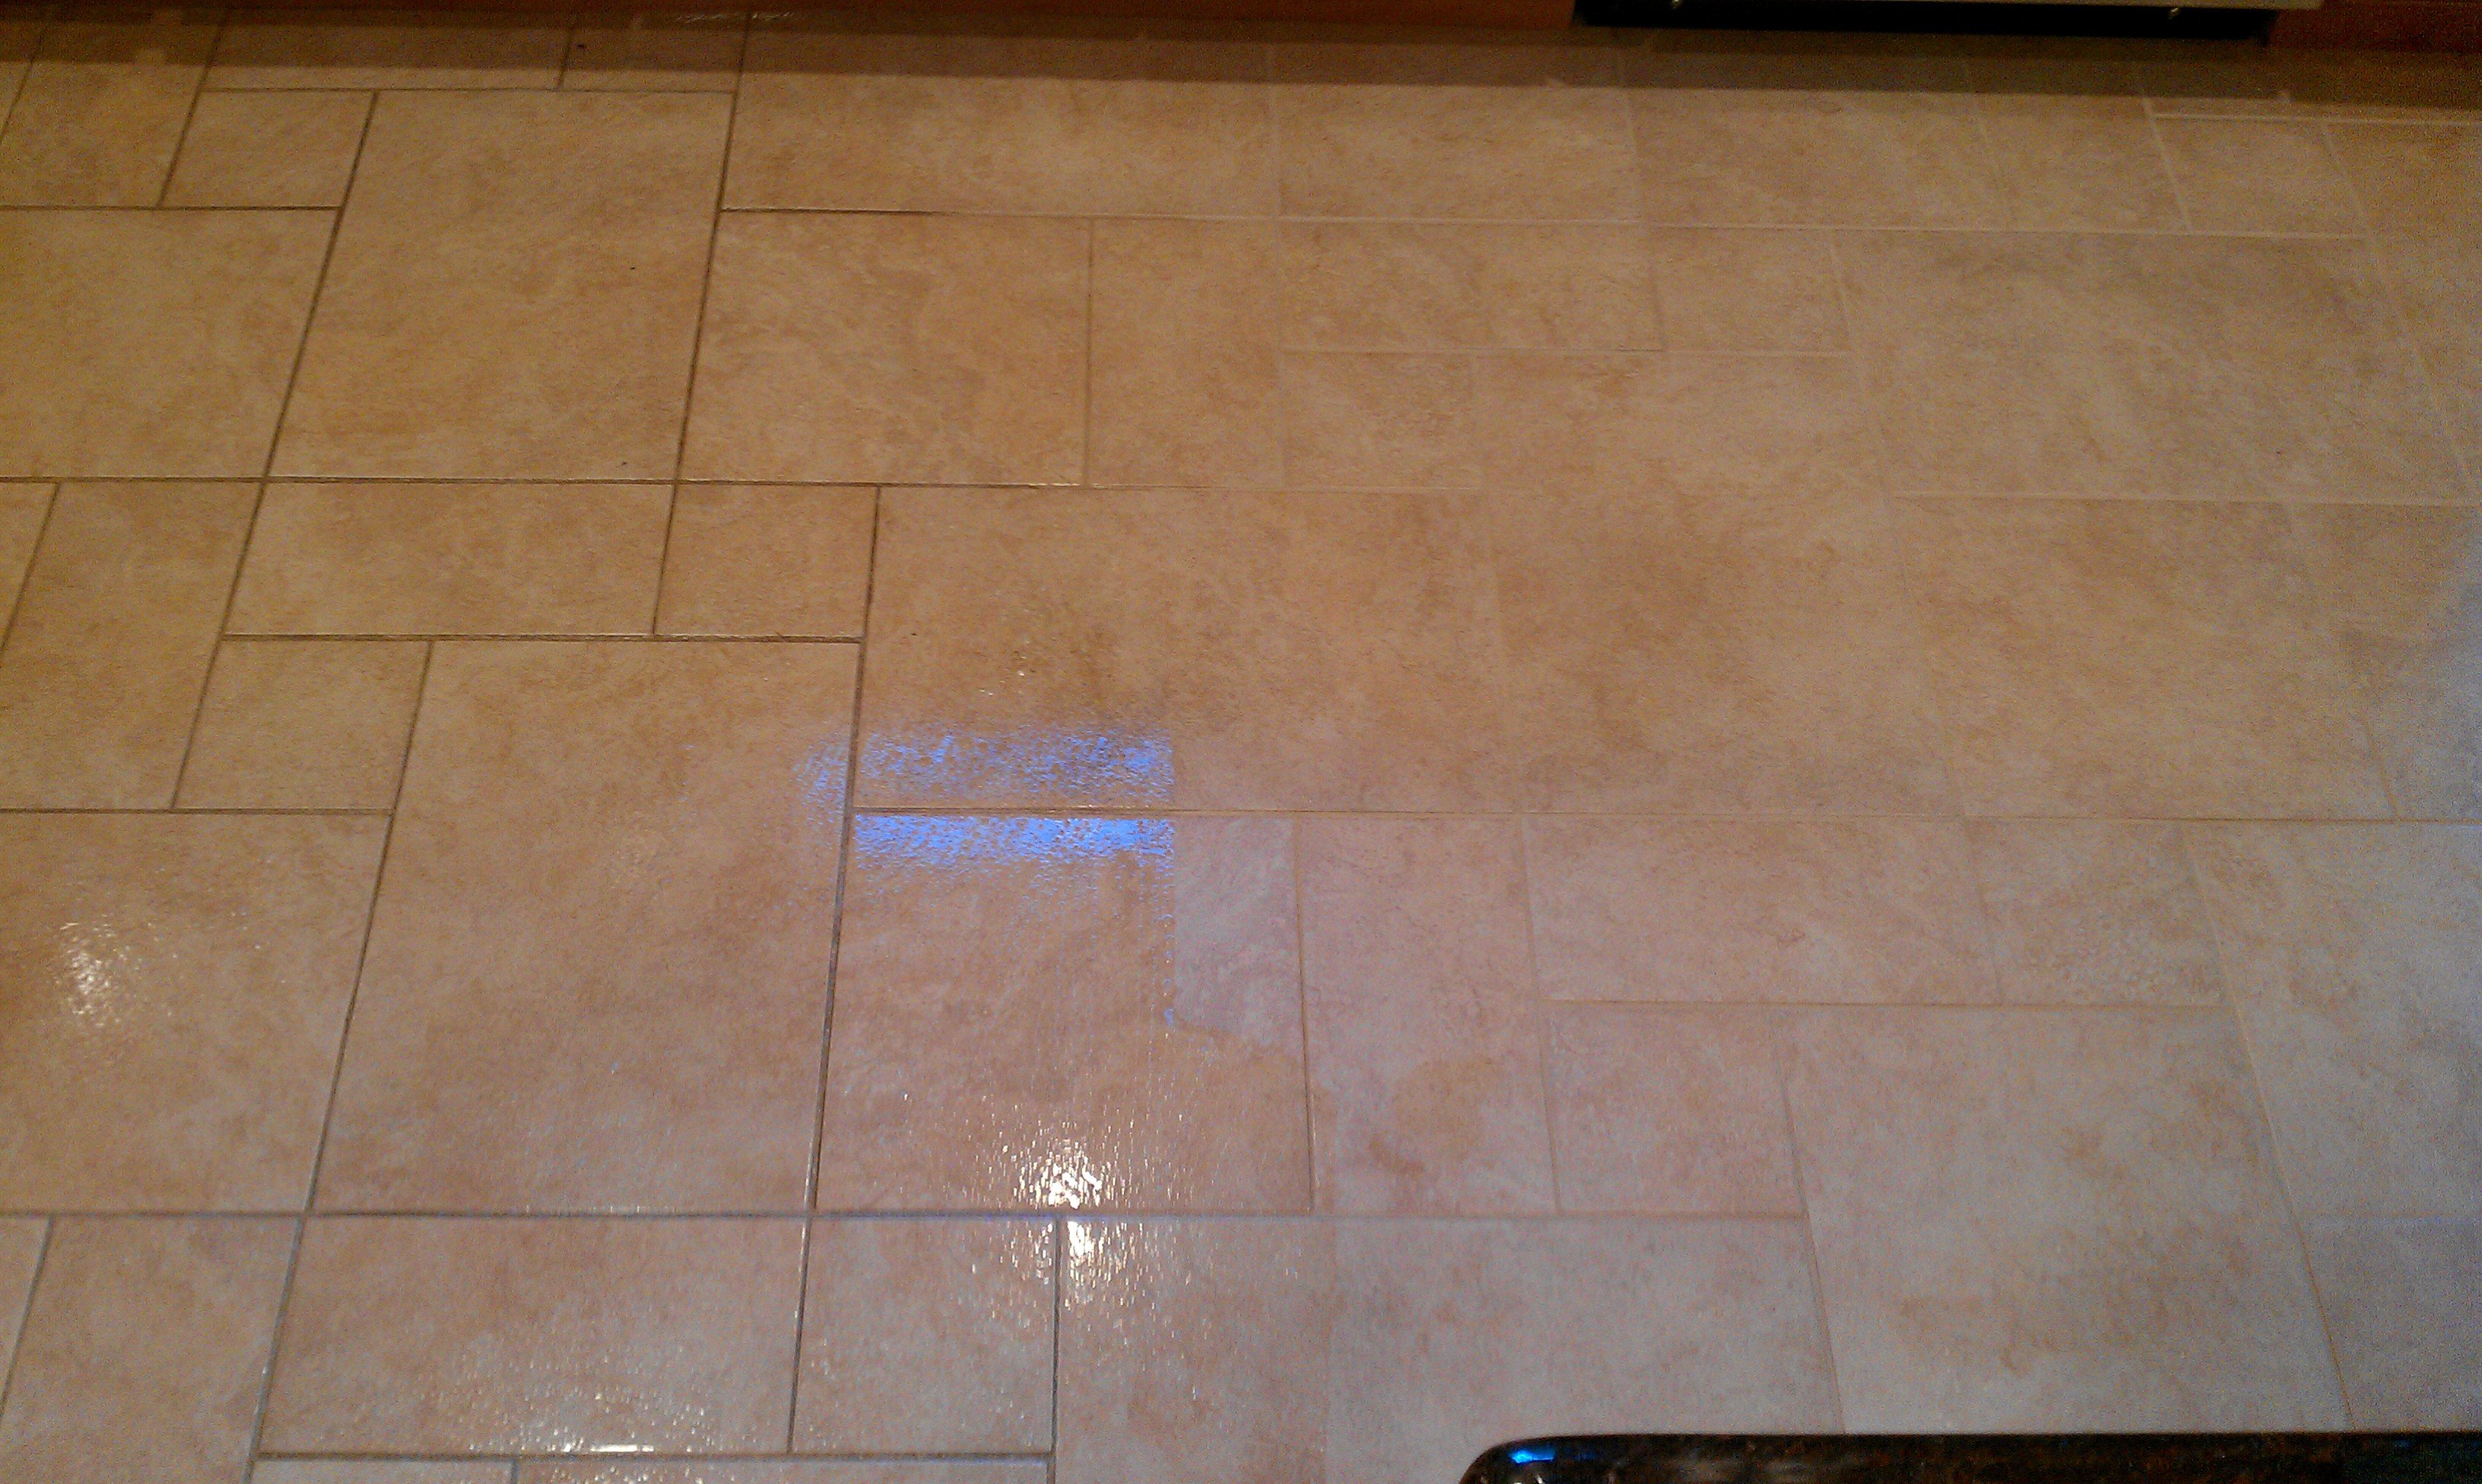 Kitchen Floor Grout Cleaner Long Island Tile And Grout Cleaning New York Long Island Total